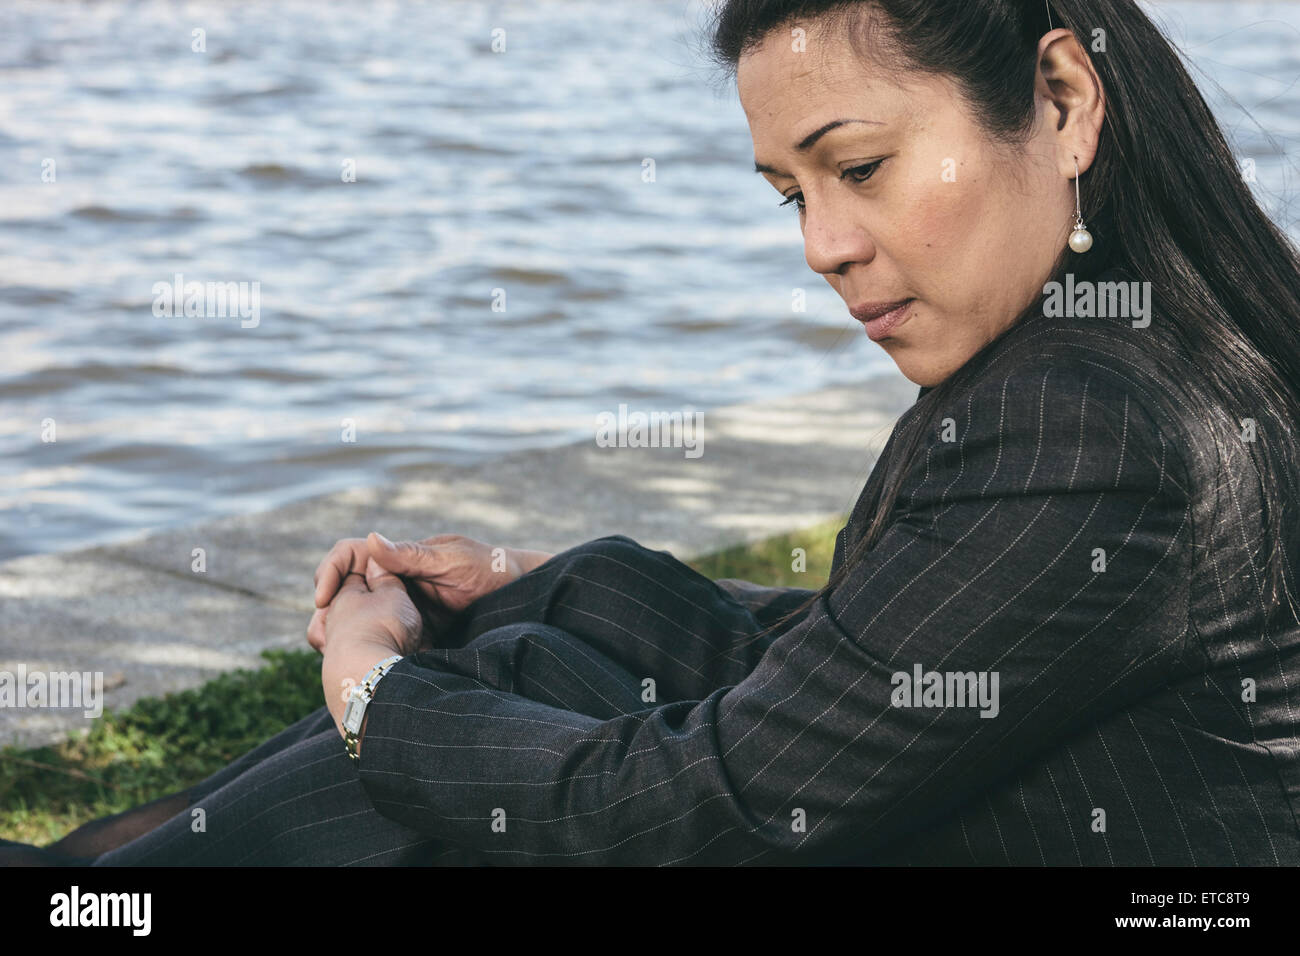 Portrait of a transexual woman in pensive pose Stock Photo